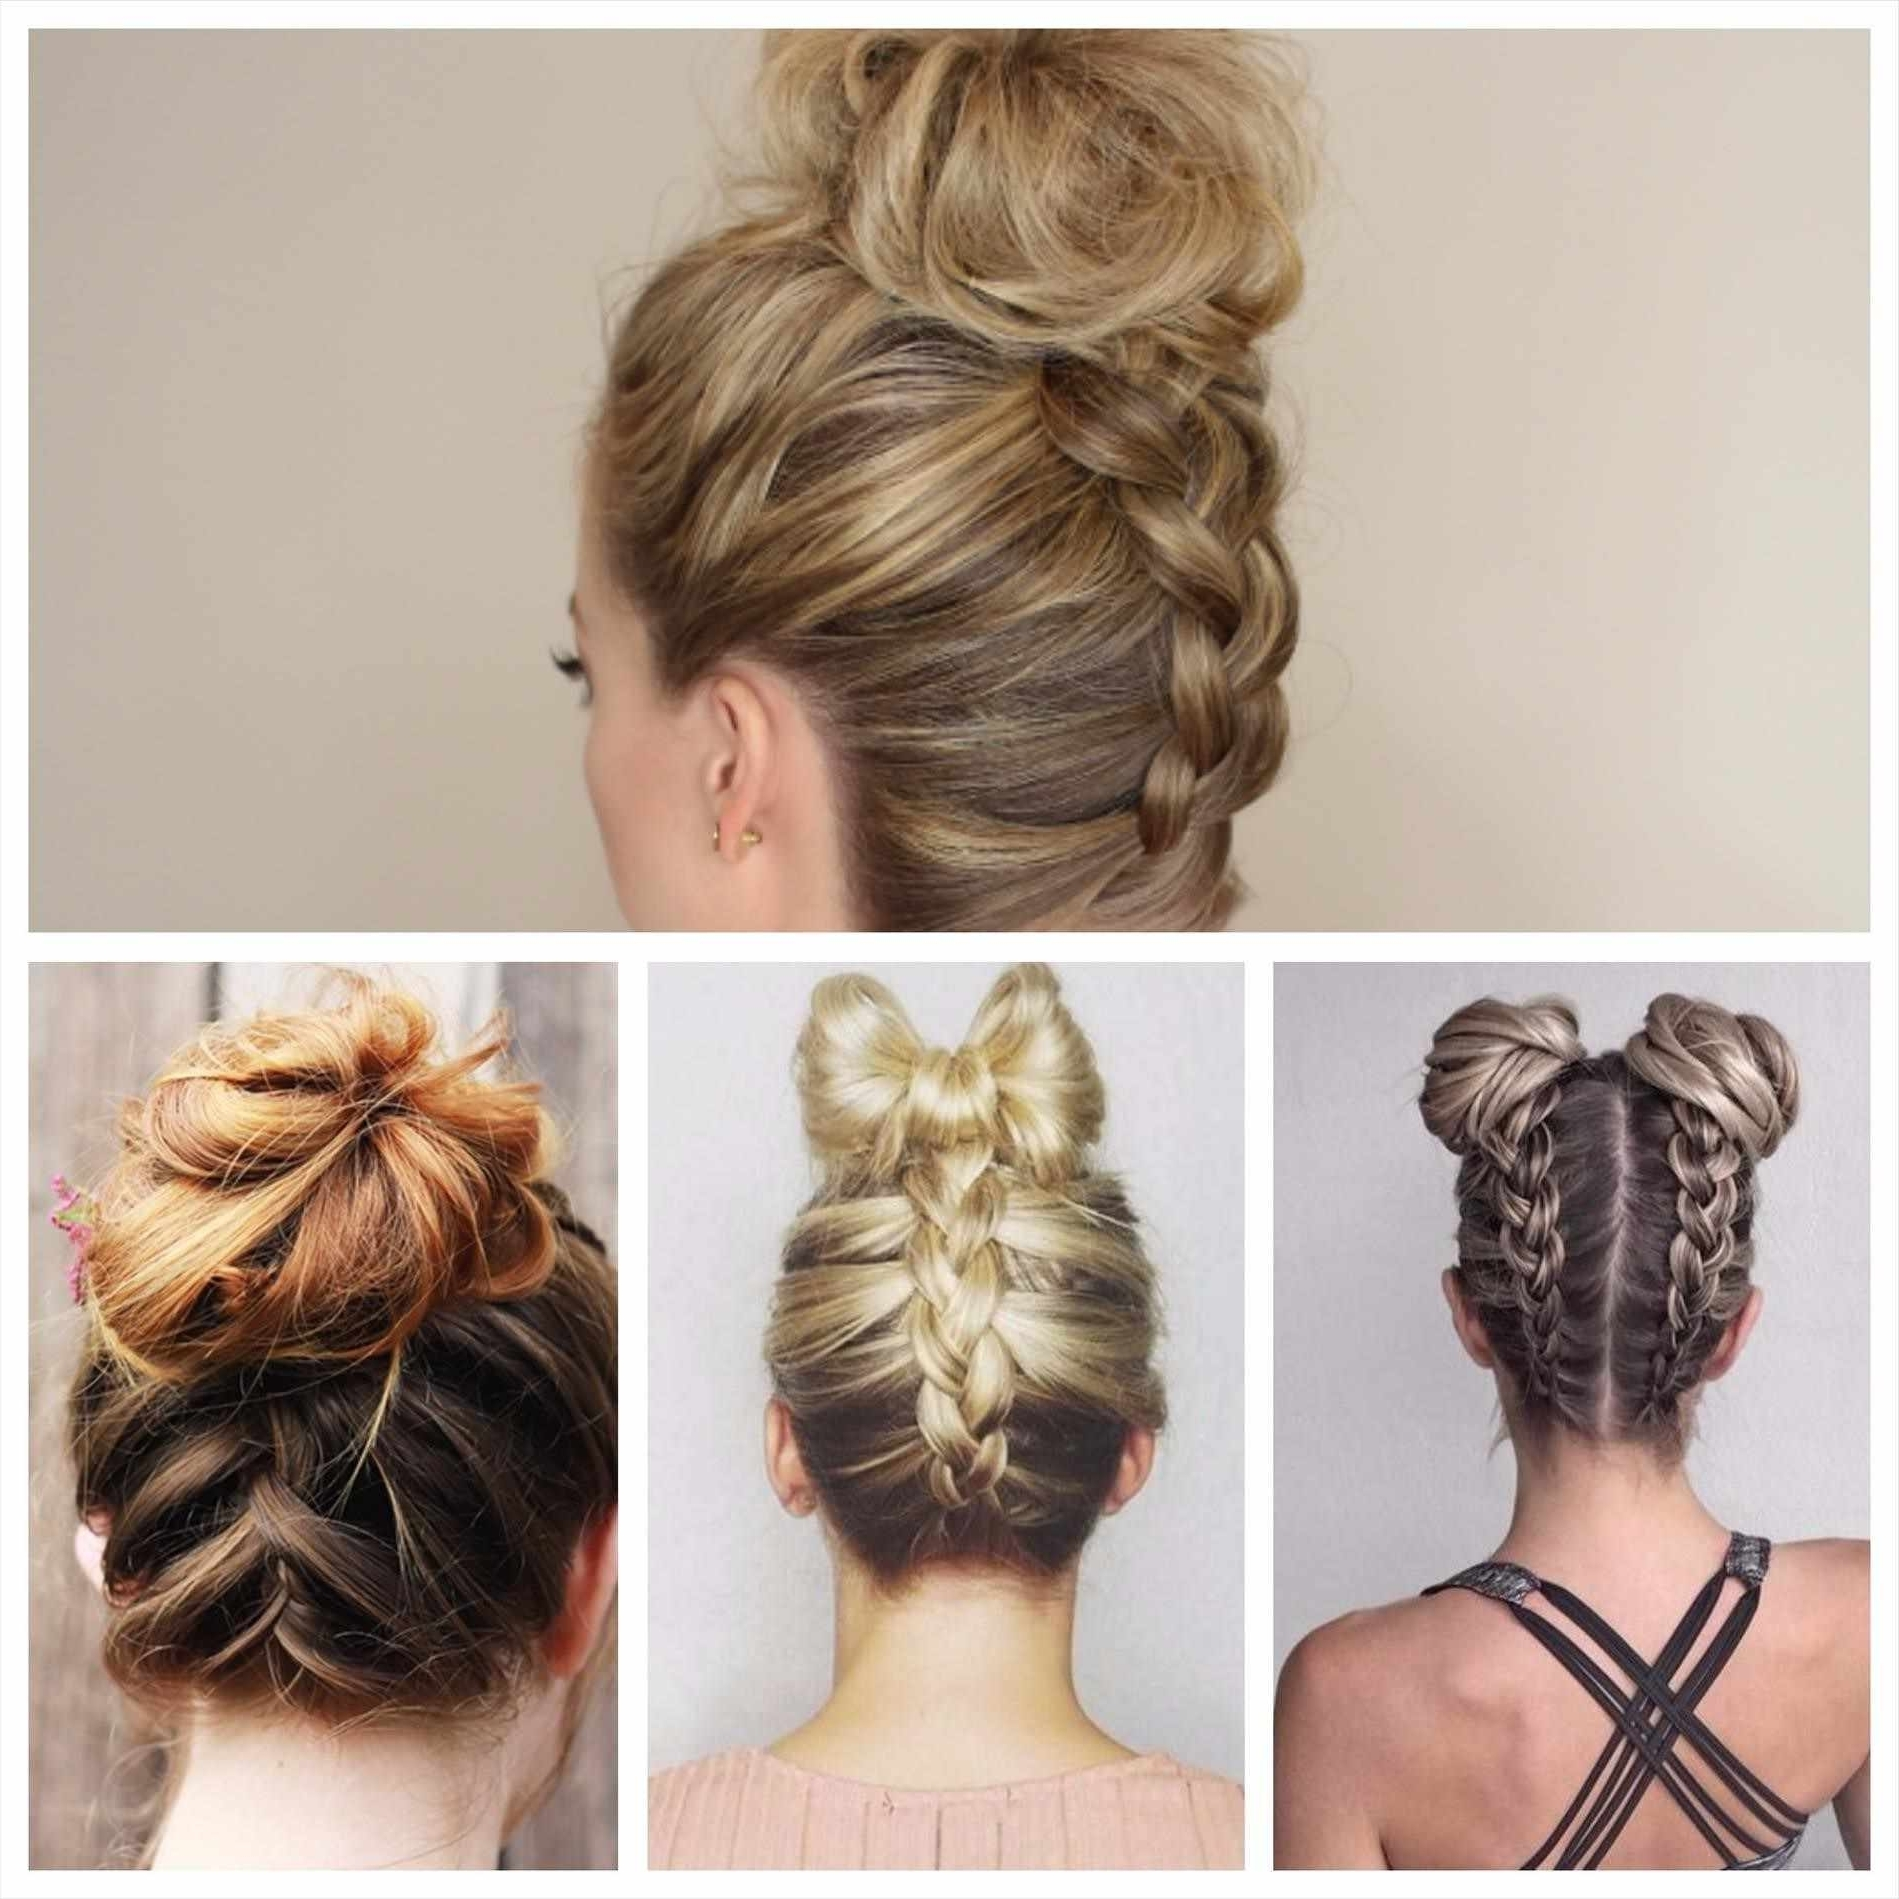 Popular Messy Bun Braided Hairstyles In Best Ideas Of Messy Bun Braid Hairstyles Awesome Tuxedo Braid Messy (View 7 of 15)